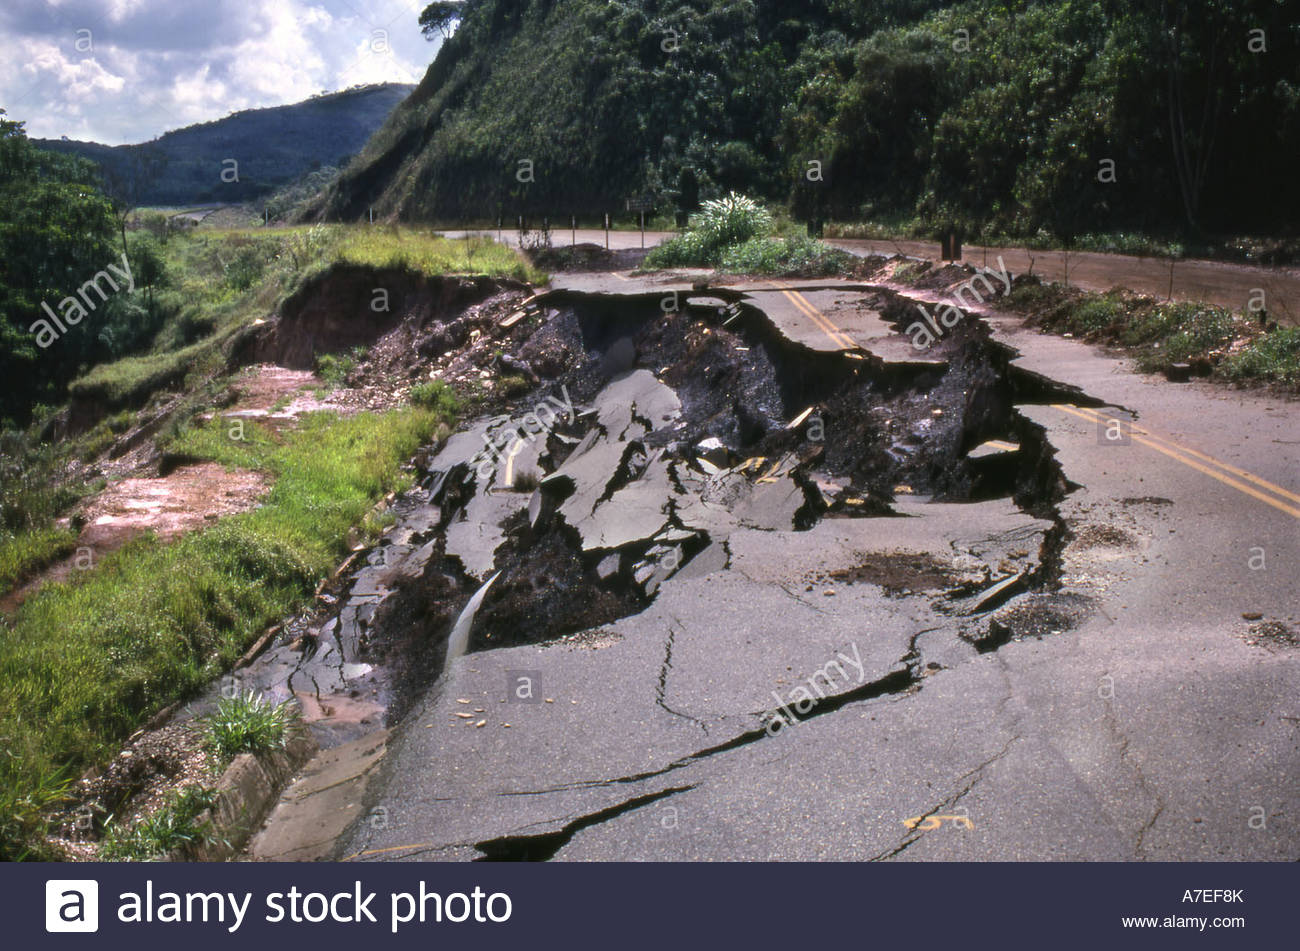 Environmental disaster of road collapsing - Stock Image